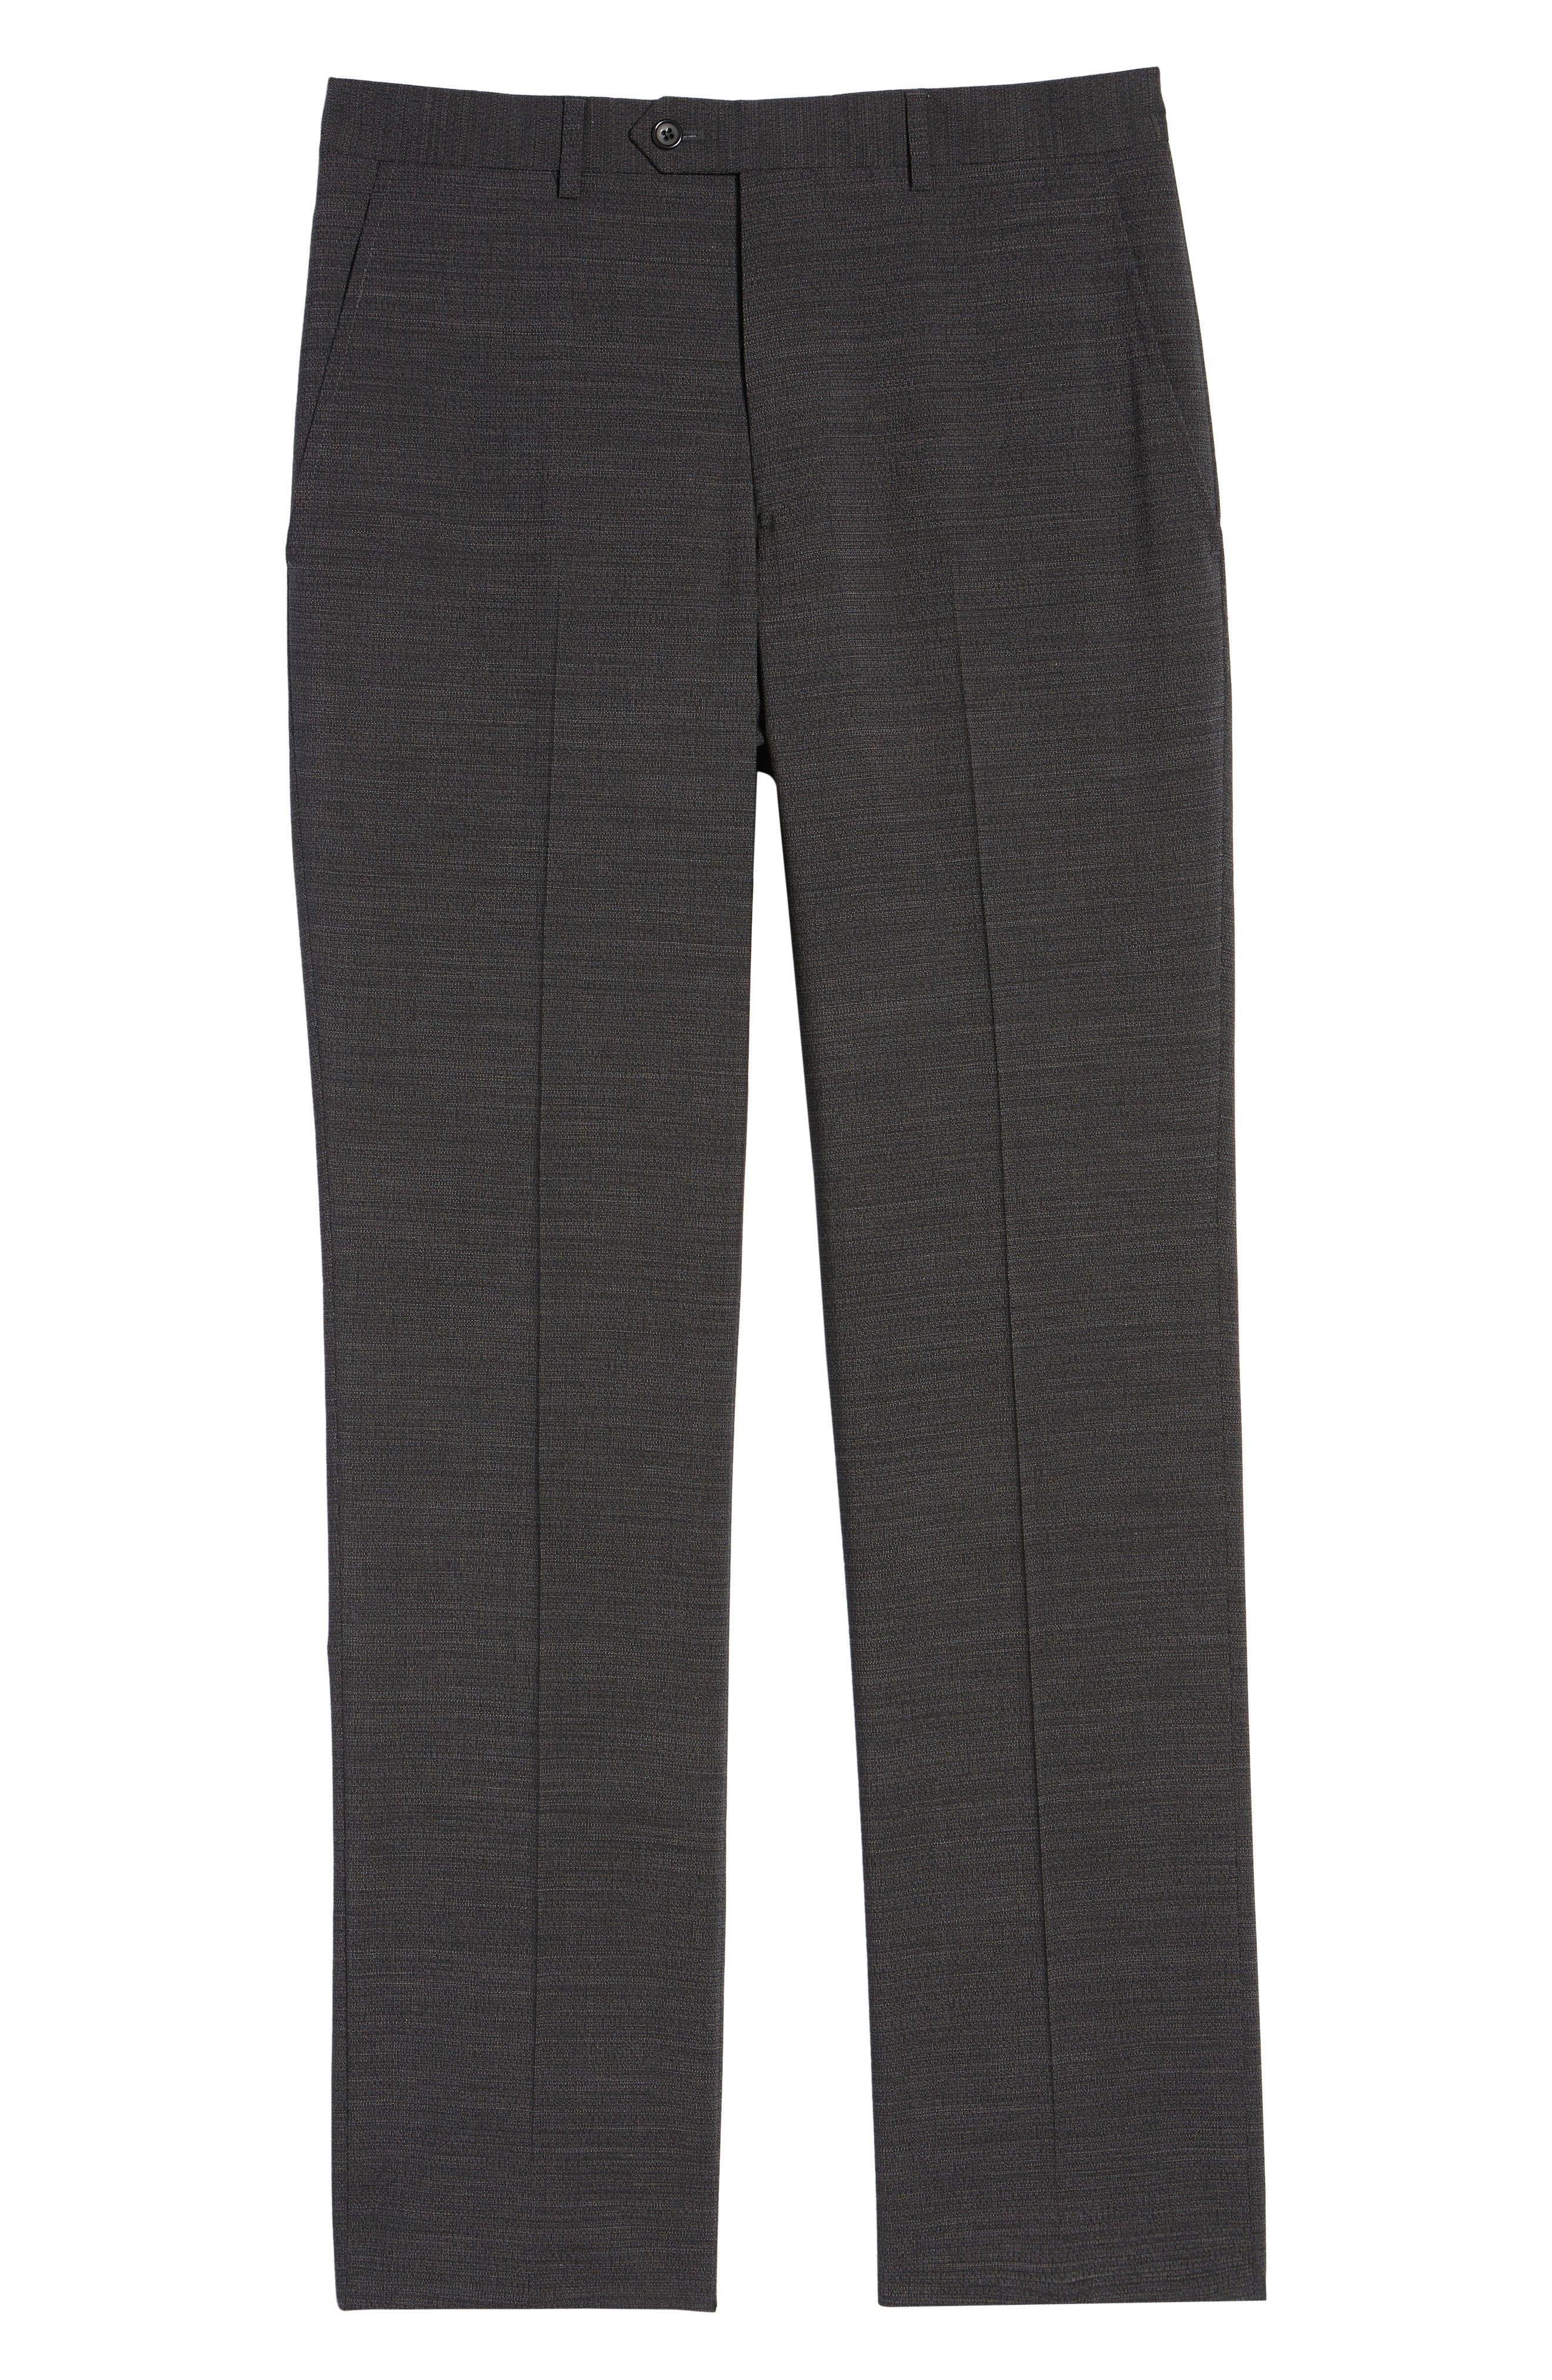 Flat Front Solid Wool Trousers,                             Alternate thumbnail 6, color,                             020